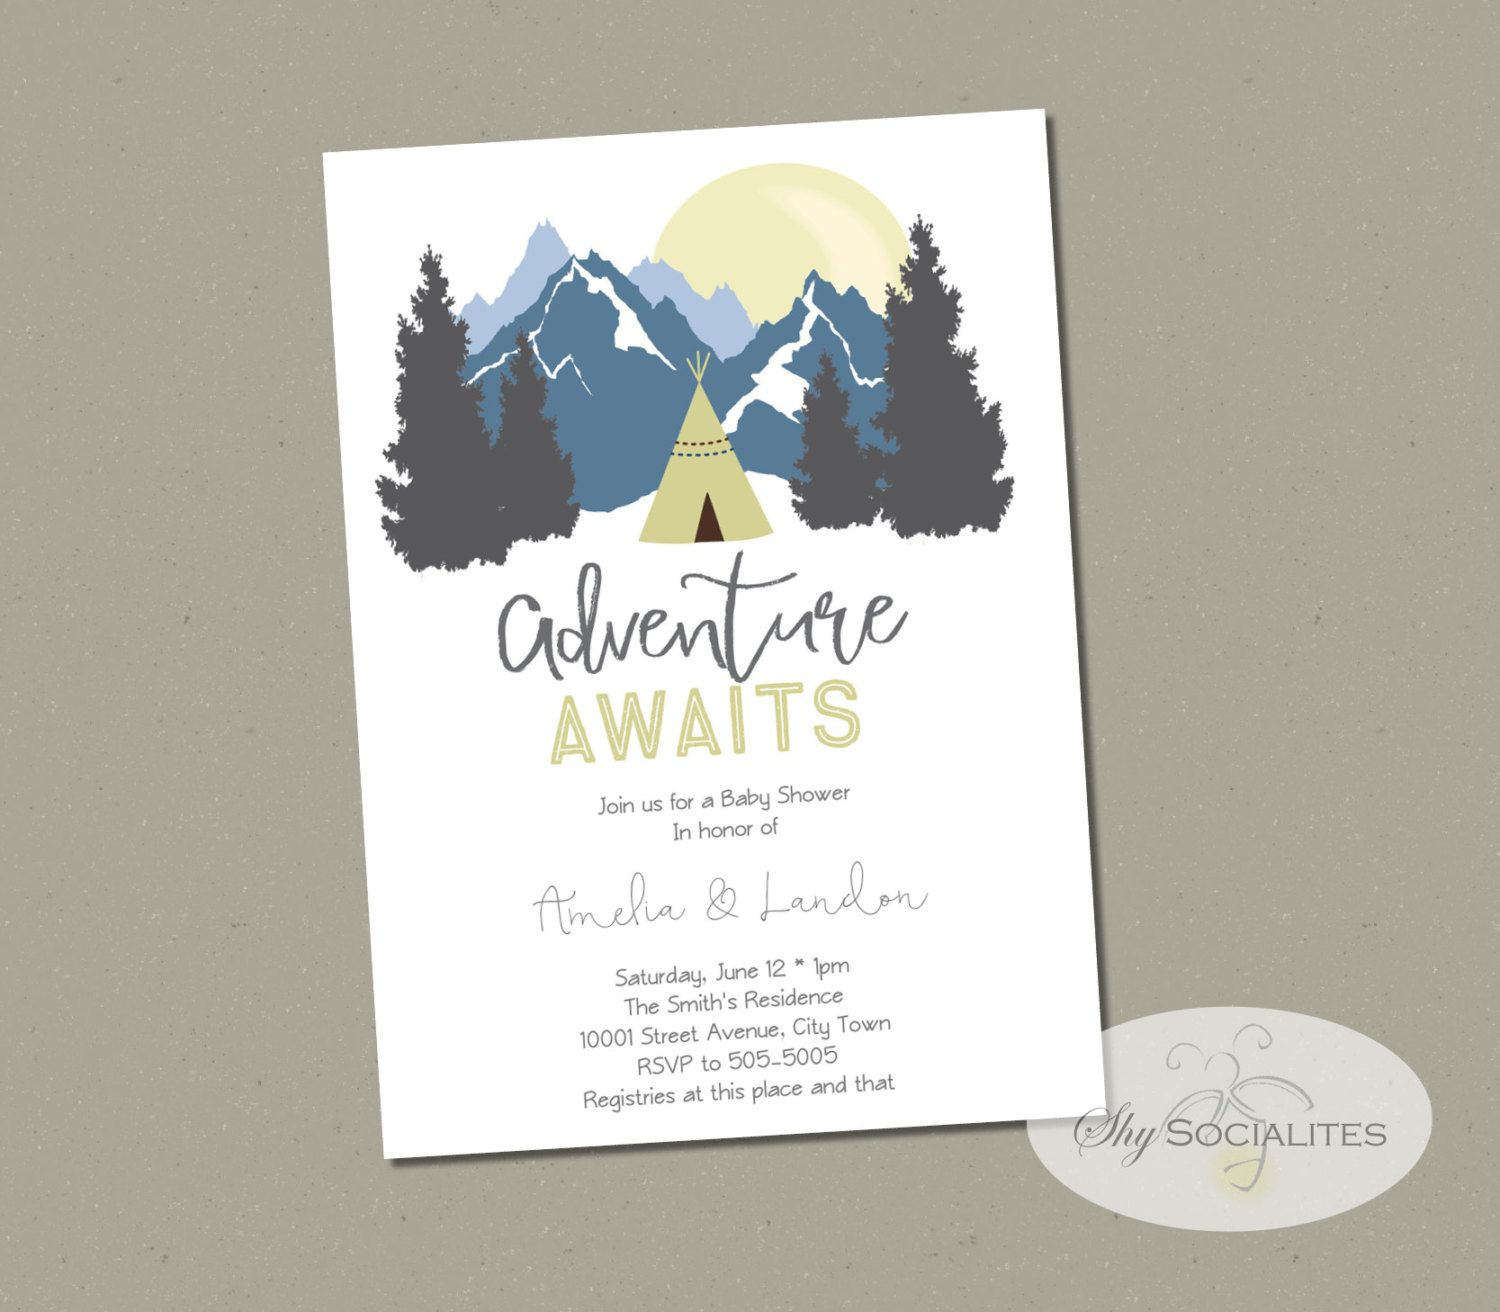 baby shower invitation for twins%0A Adventure Baby Shower Invitation  Woodland Boy Mountains Invite Printable   The Adventure Begins  Tribal Camping Navy  u     Mint Adventure Awaits